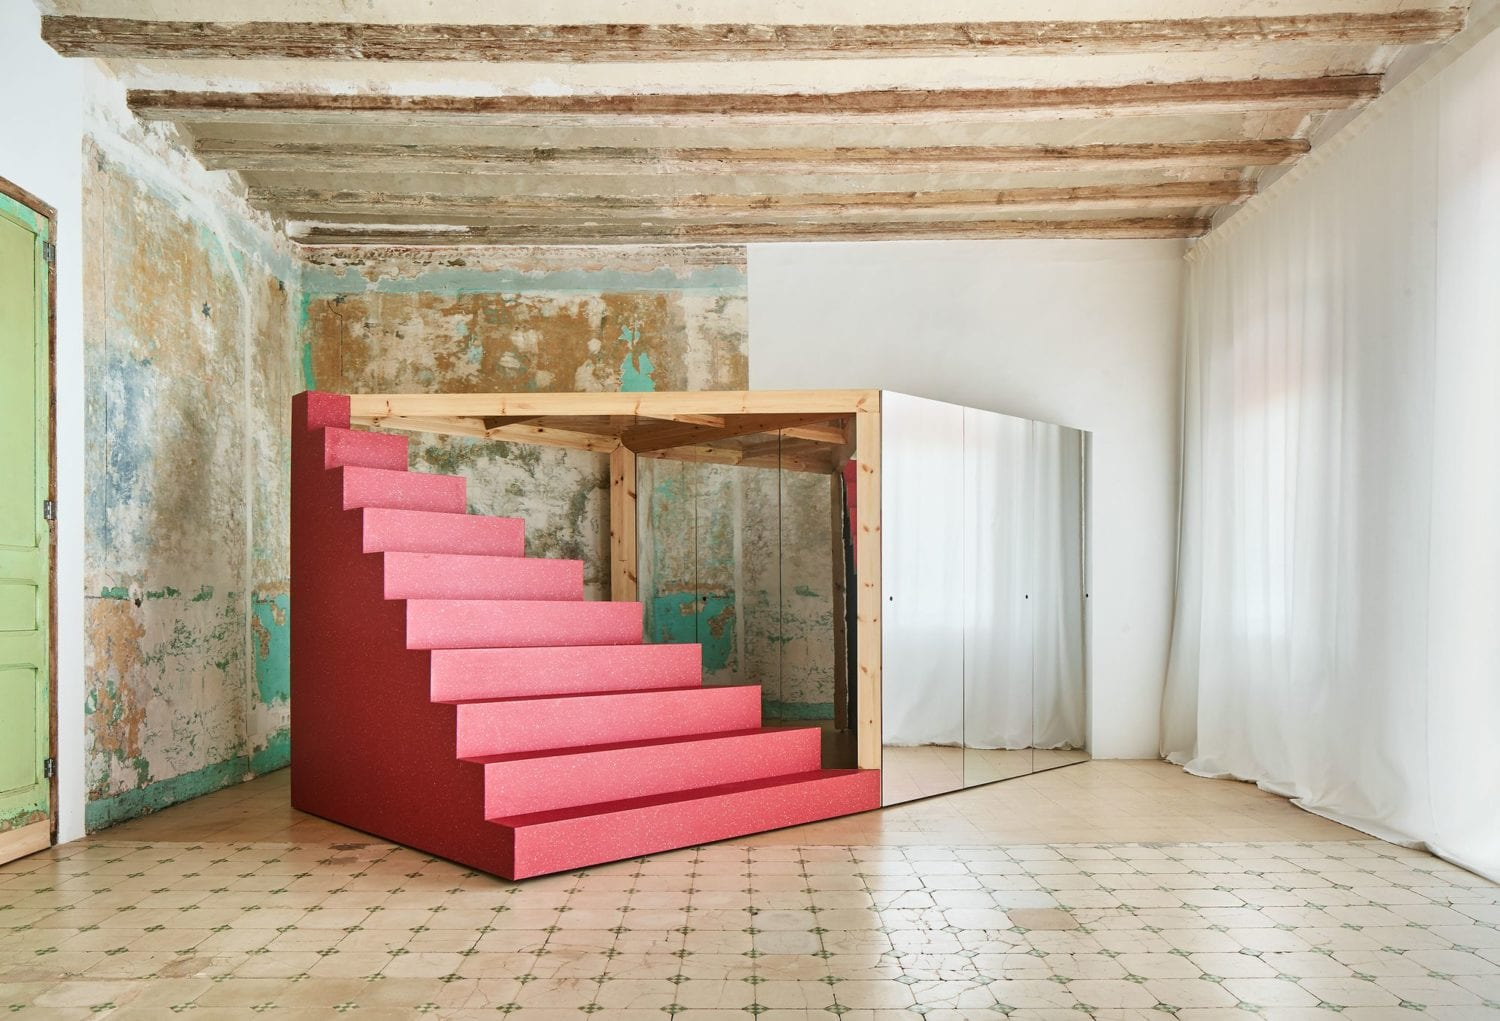 Transforming Room For Child Inside Barcelona Apartment By P M A A Yellowtrace 05